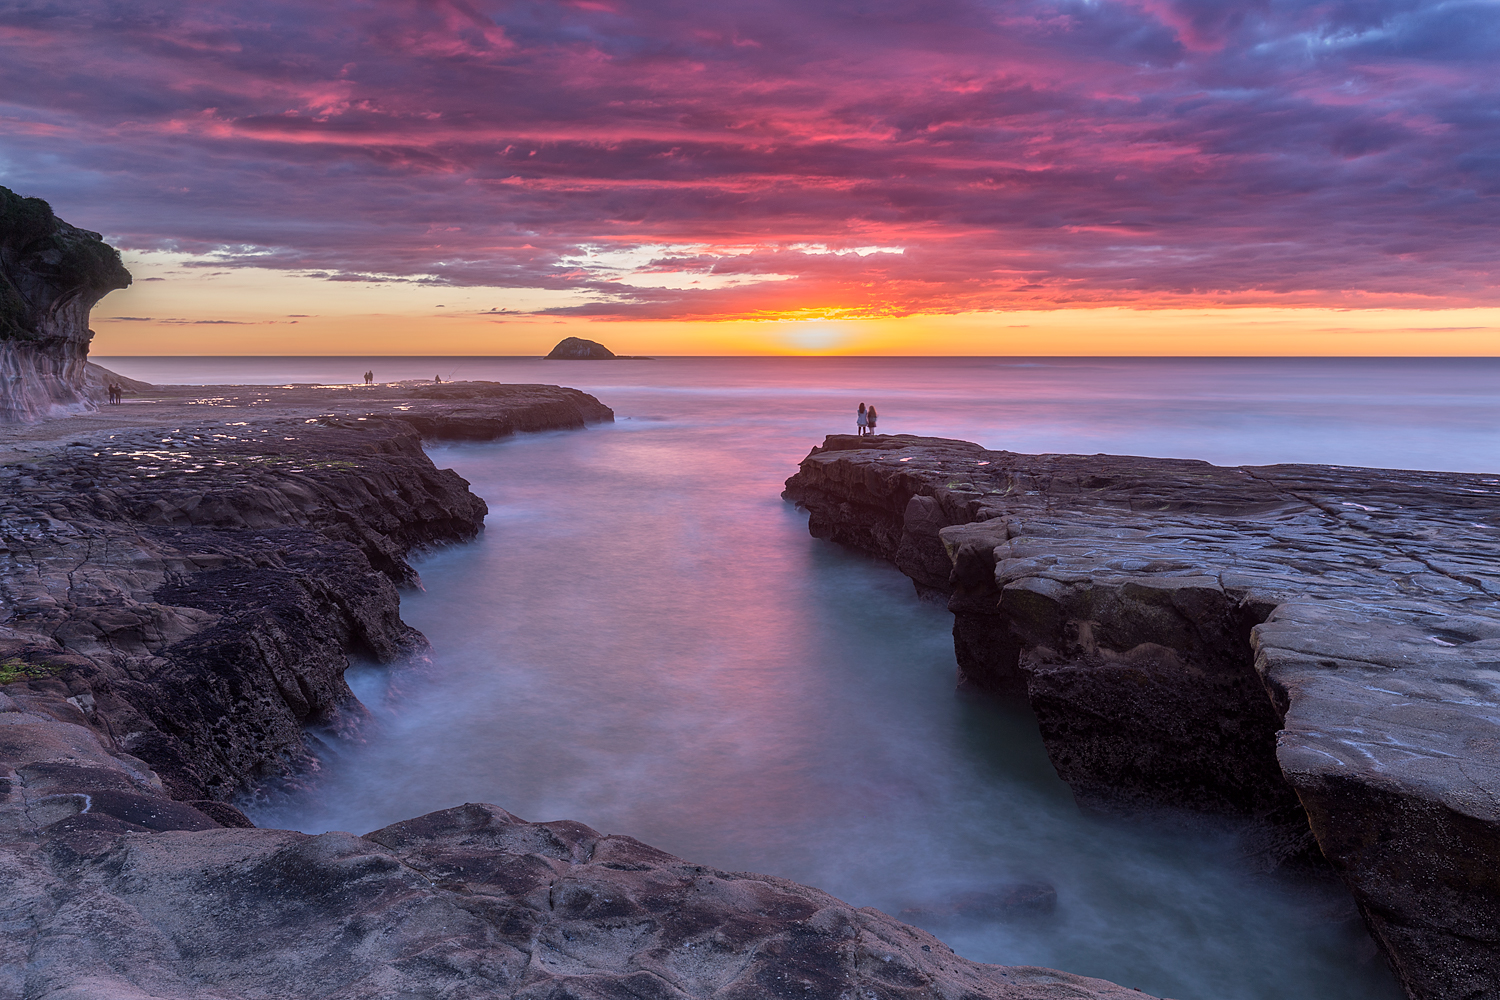 Muriwai Sunset (again) | 26mm | f10 | 3 exposures @ 4, 15 and 30sec | ISO100